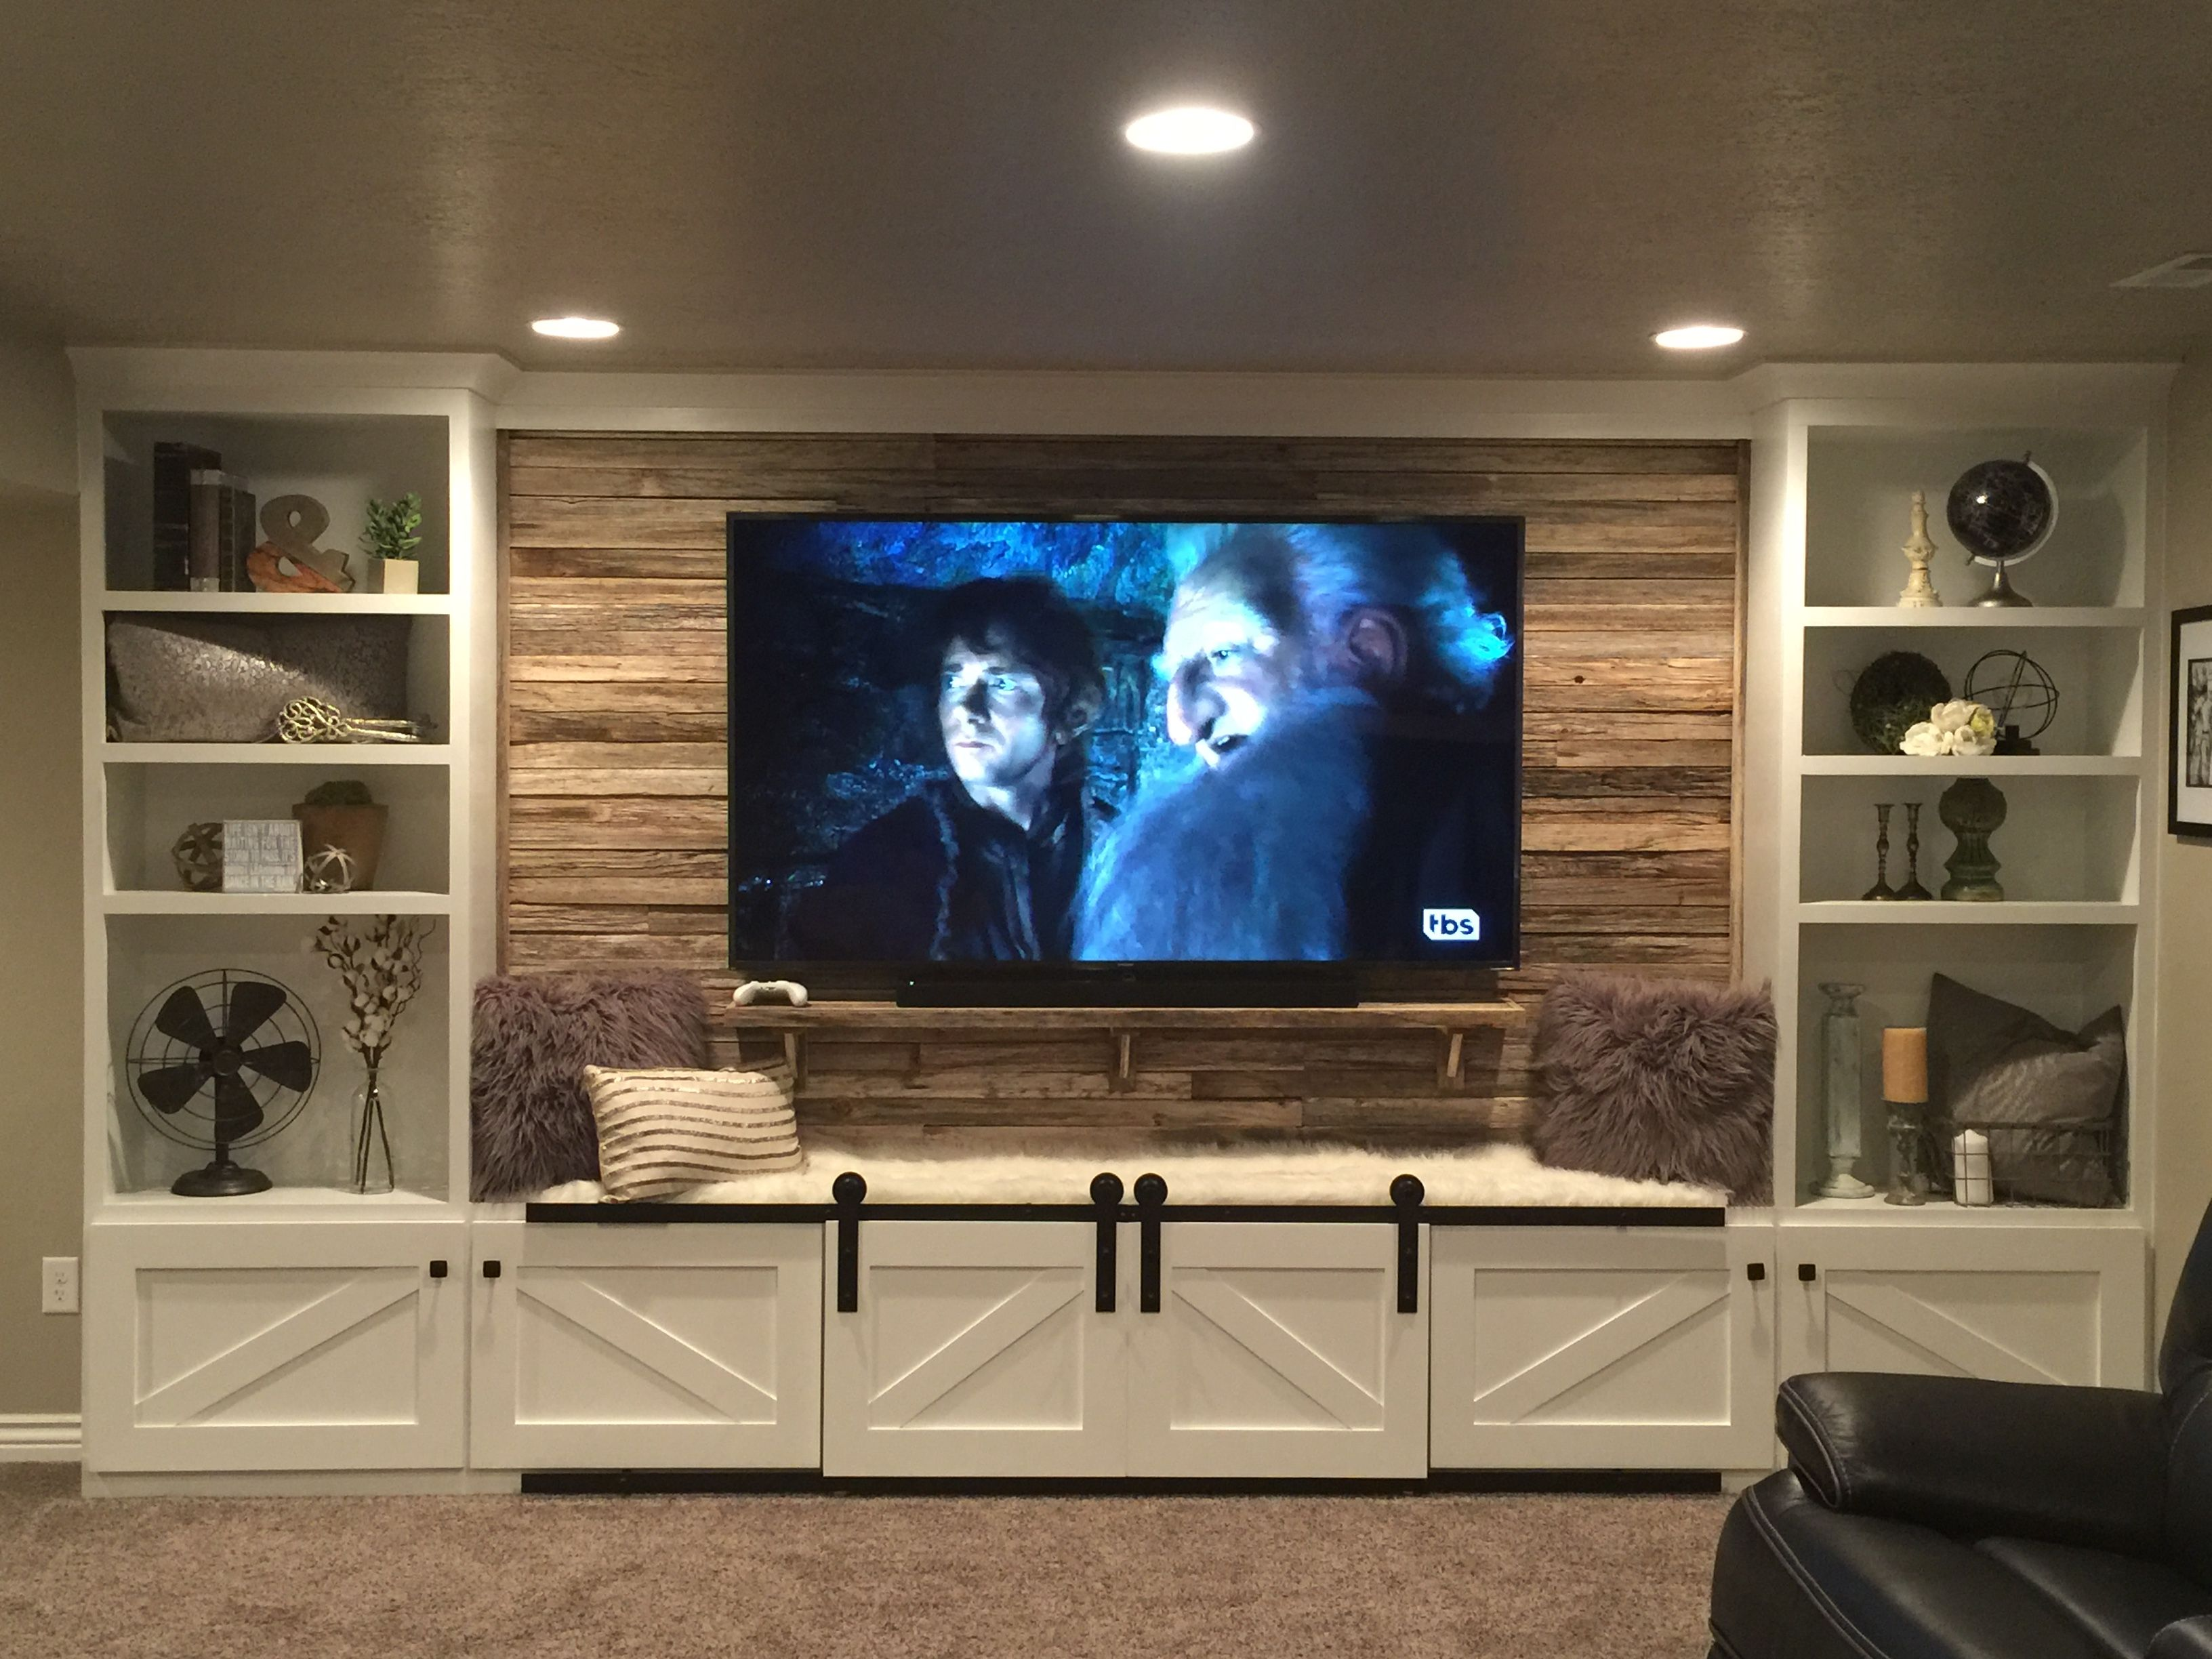 17 DIY Entertainment Center Ideas and Designs For Your New ...